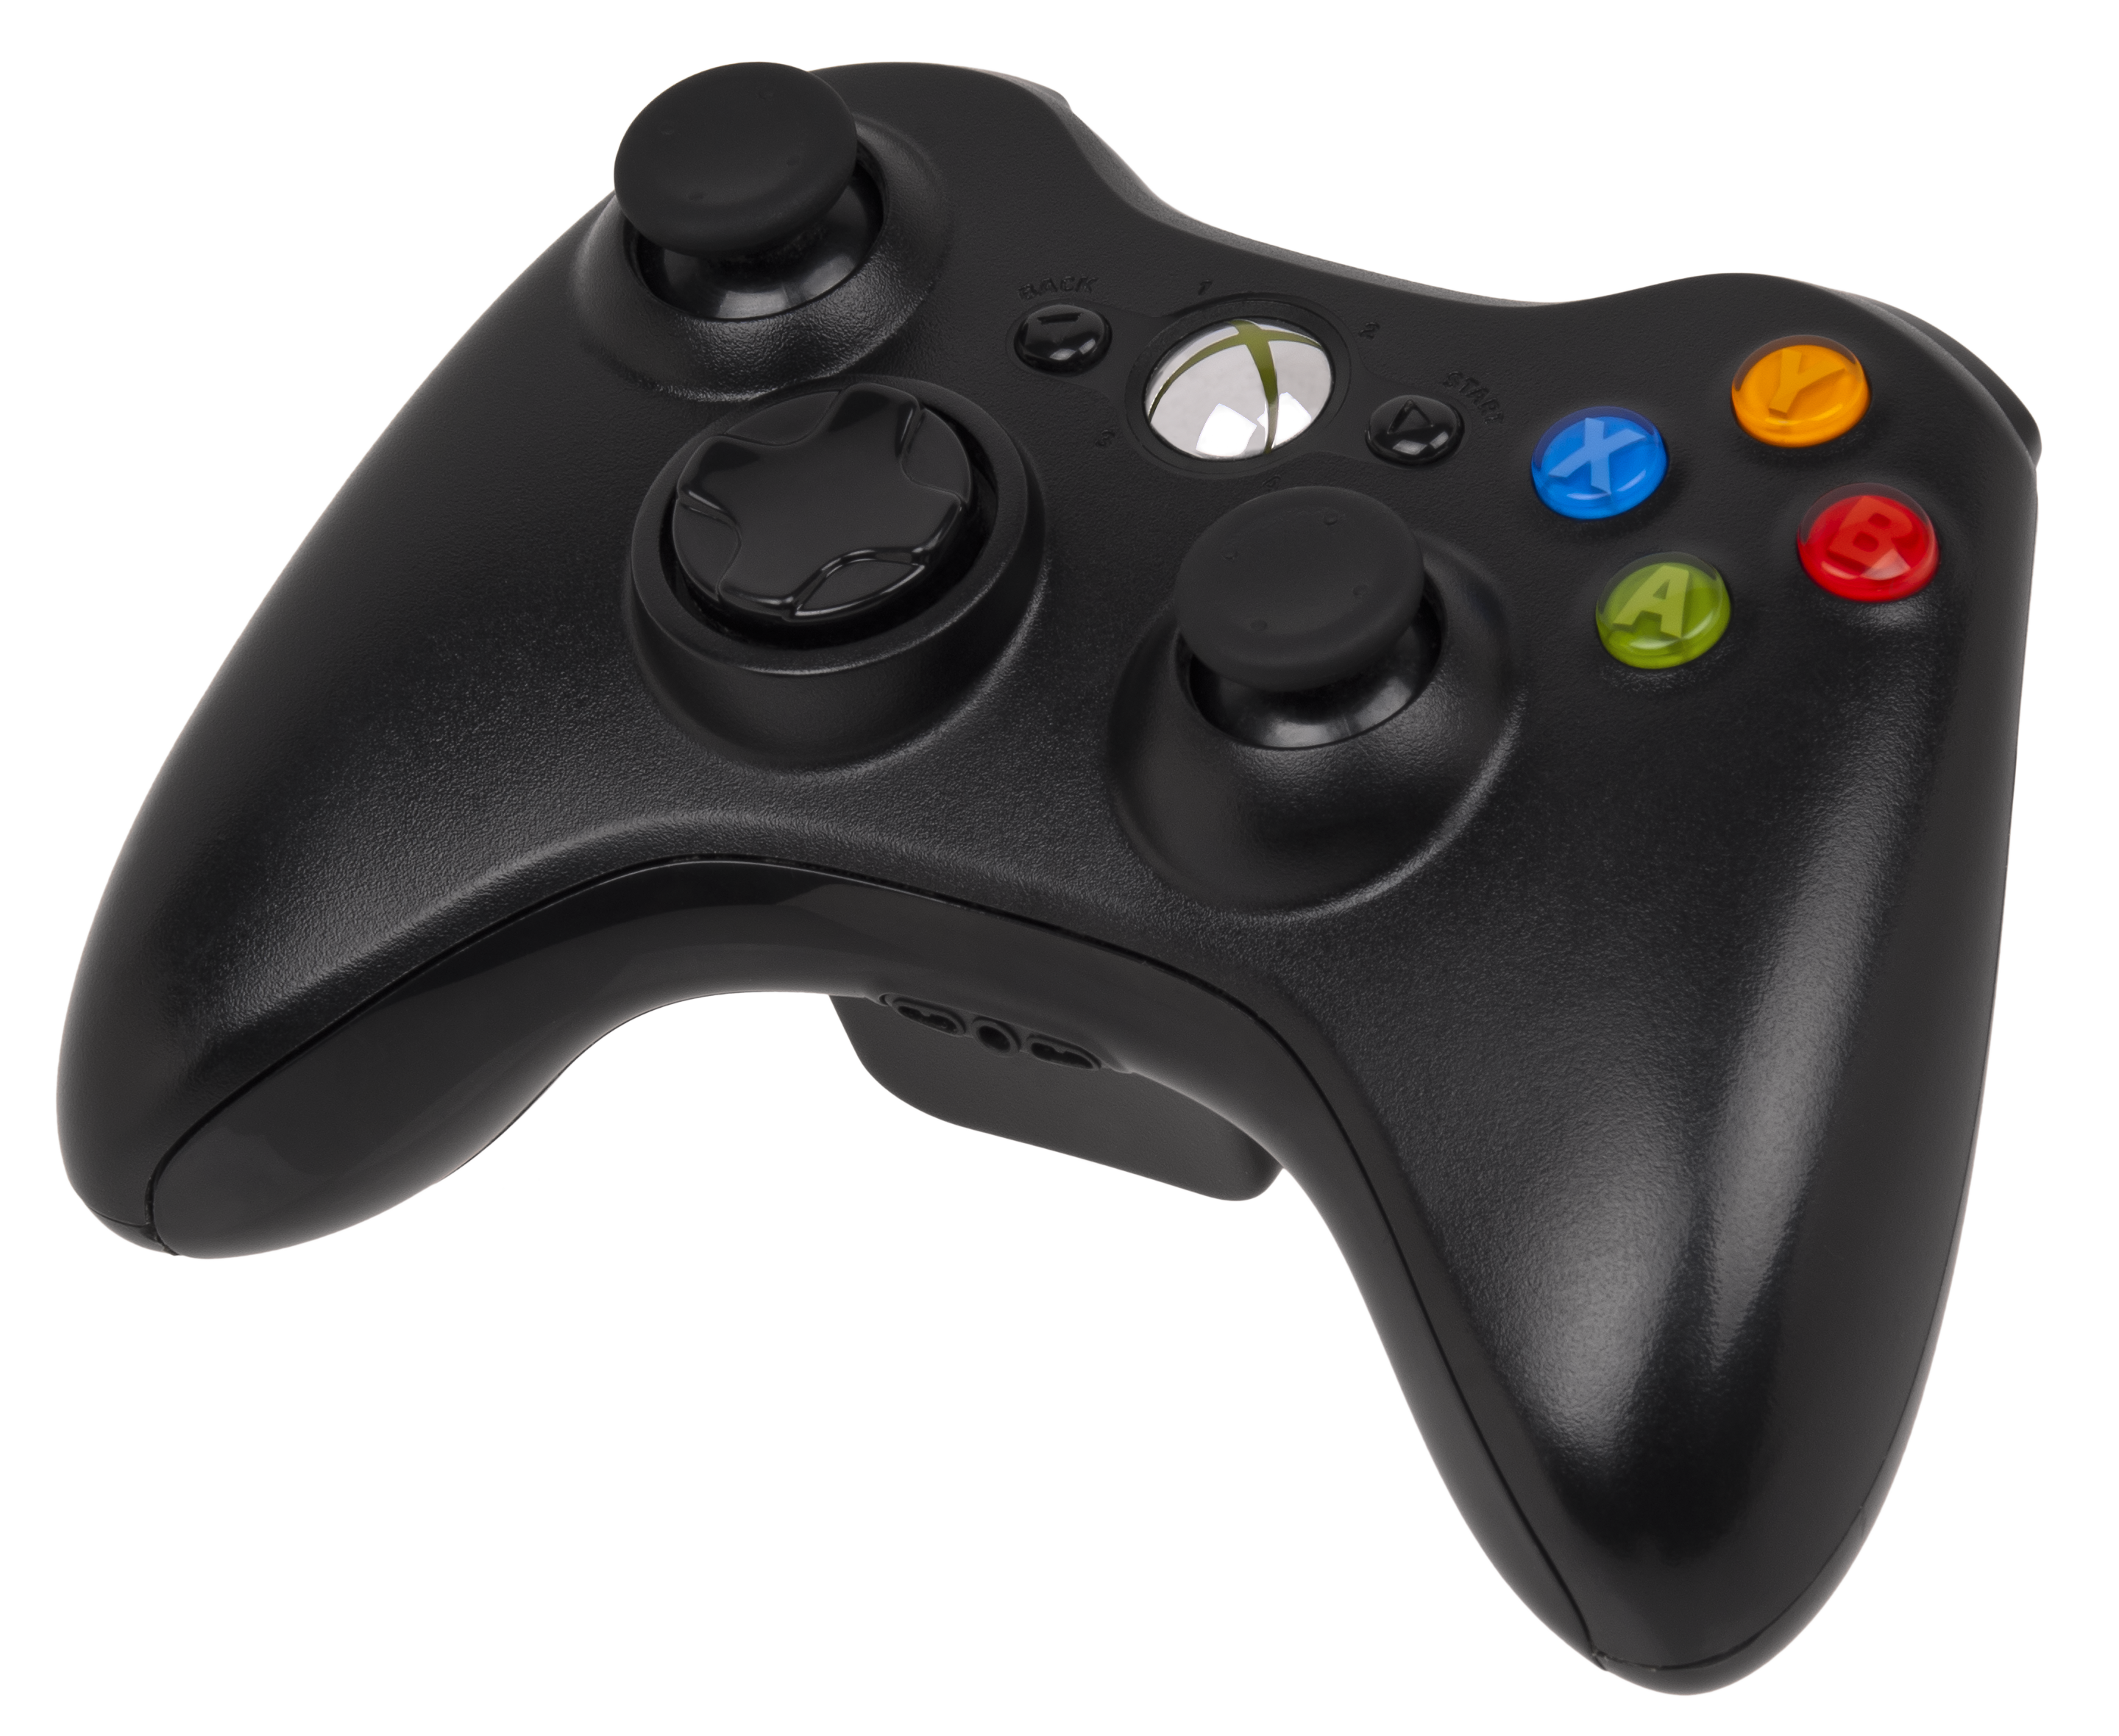 File:Xbox-360-S-Controller.pn